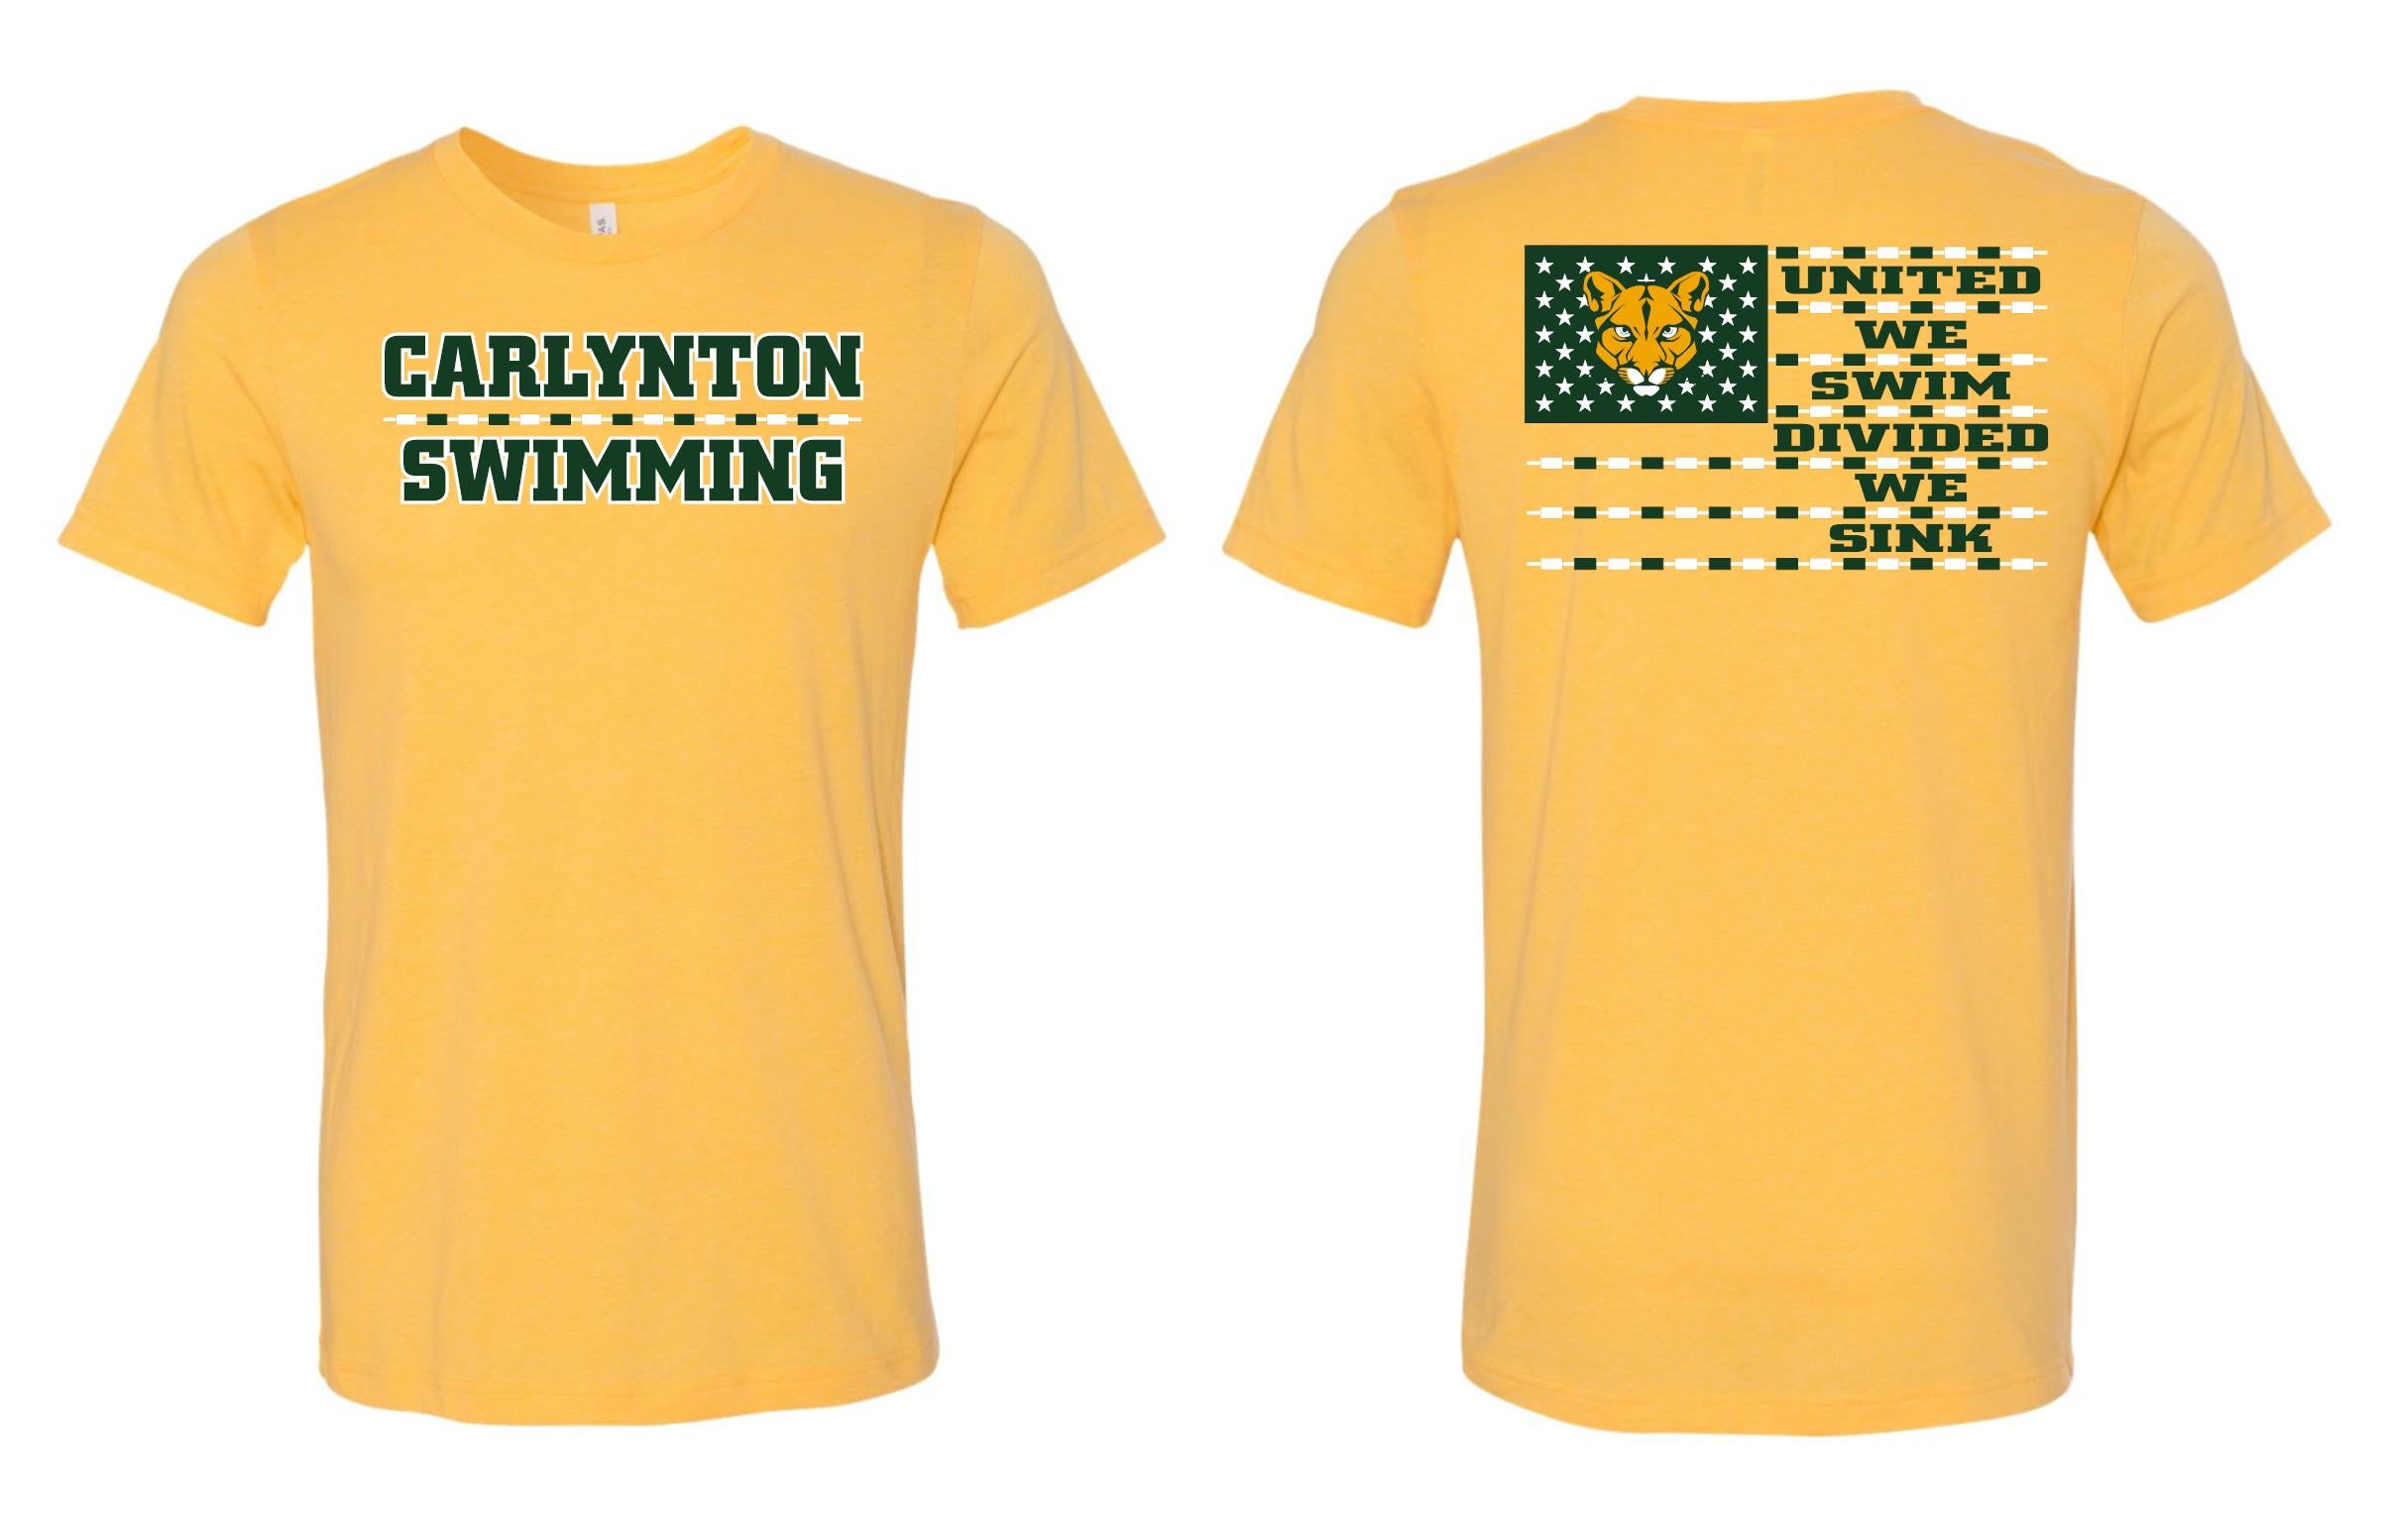 CARLYNTON SWIMMING FLAG SHORT SLEEVE GILDAN TSHIRT